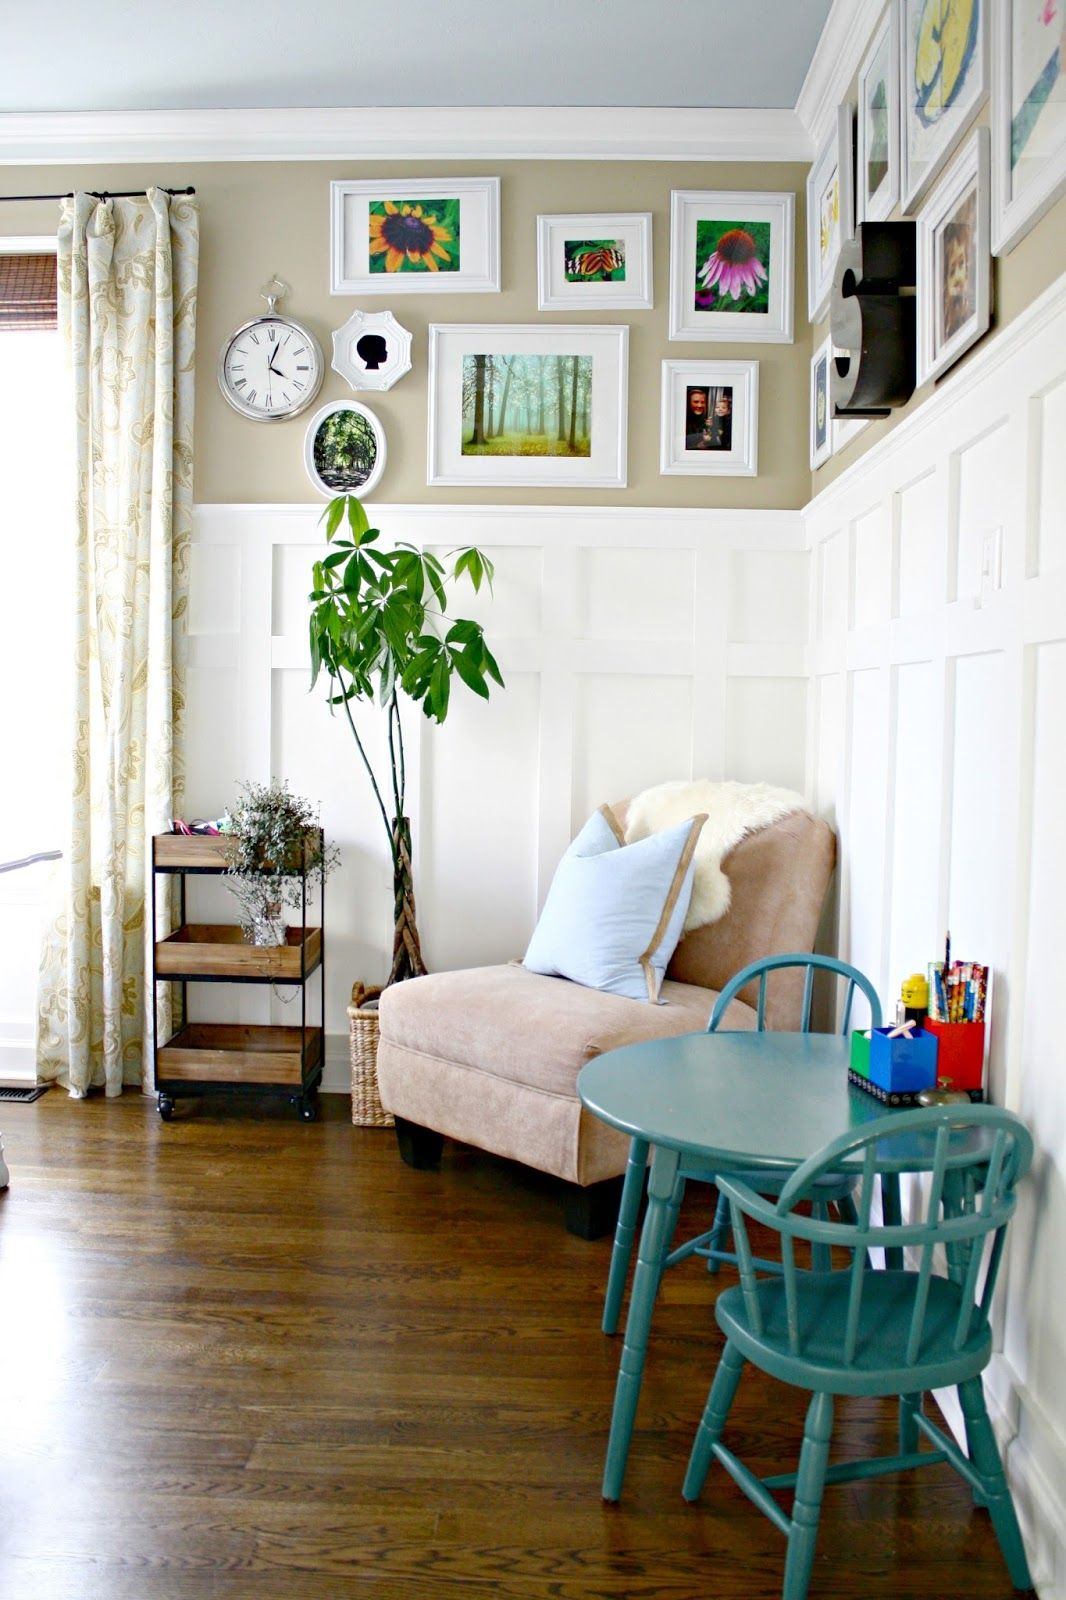 <title> FAQs | Thrifty Decor Chick